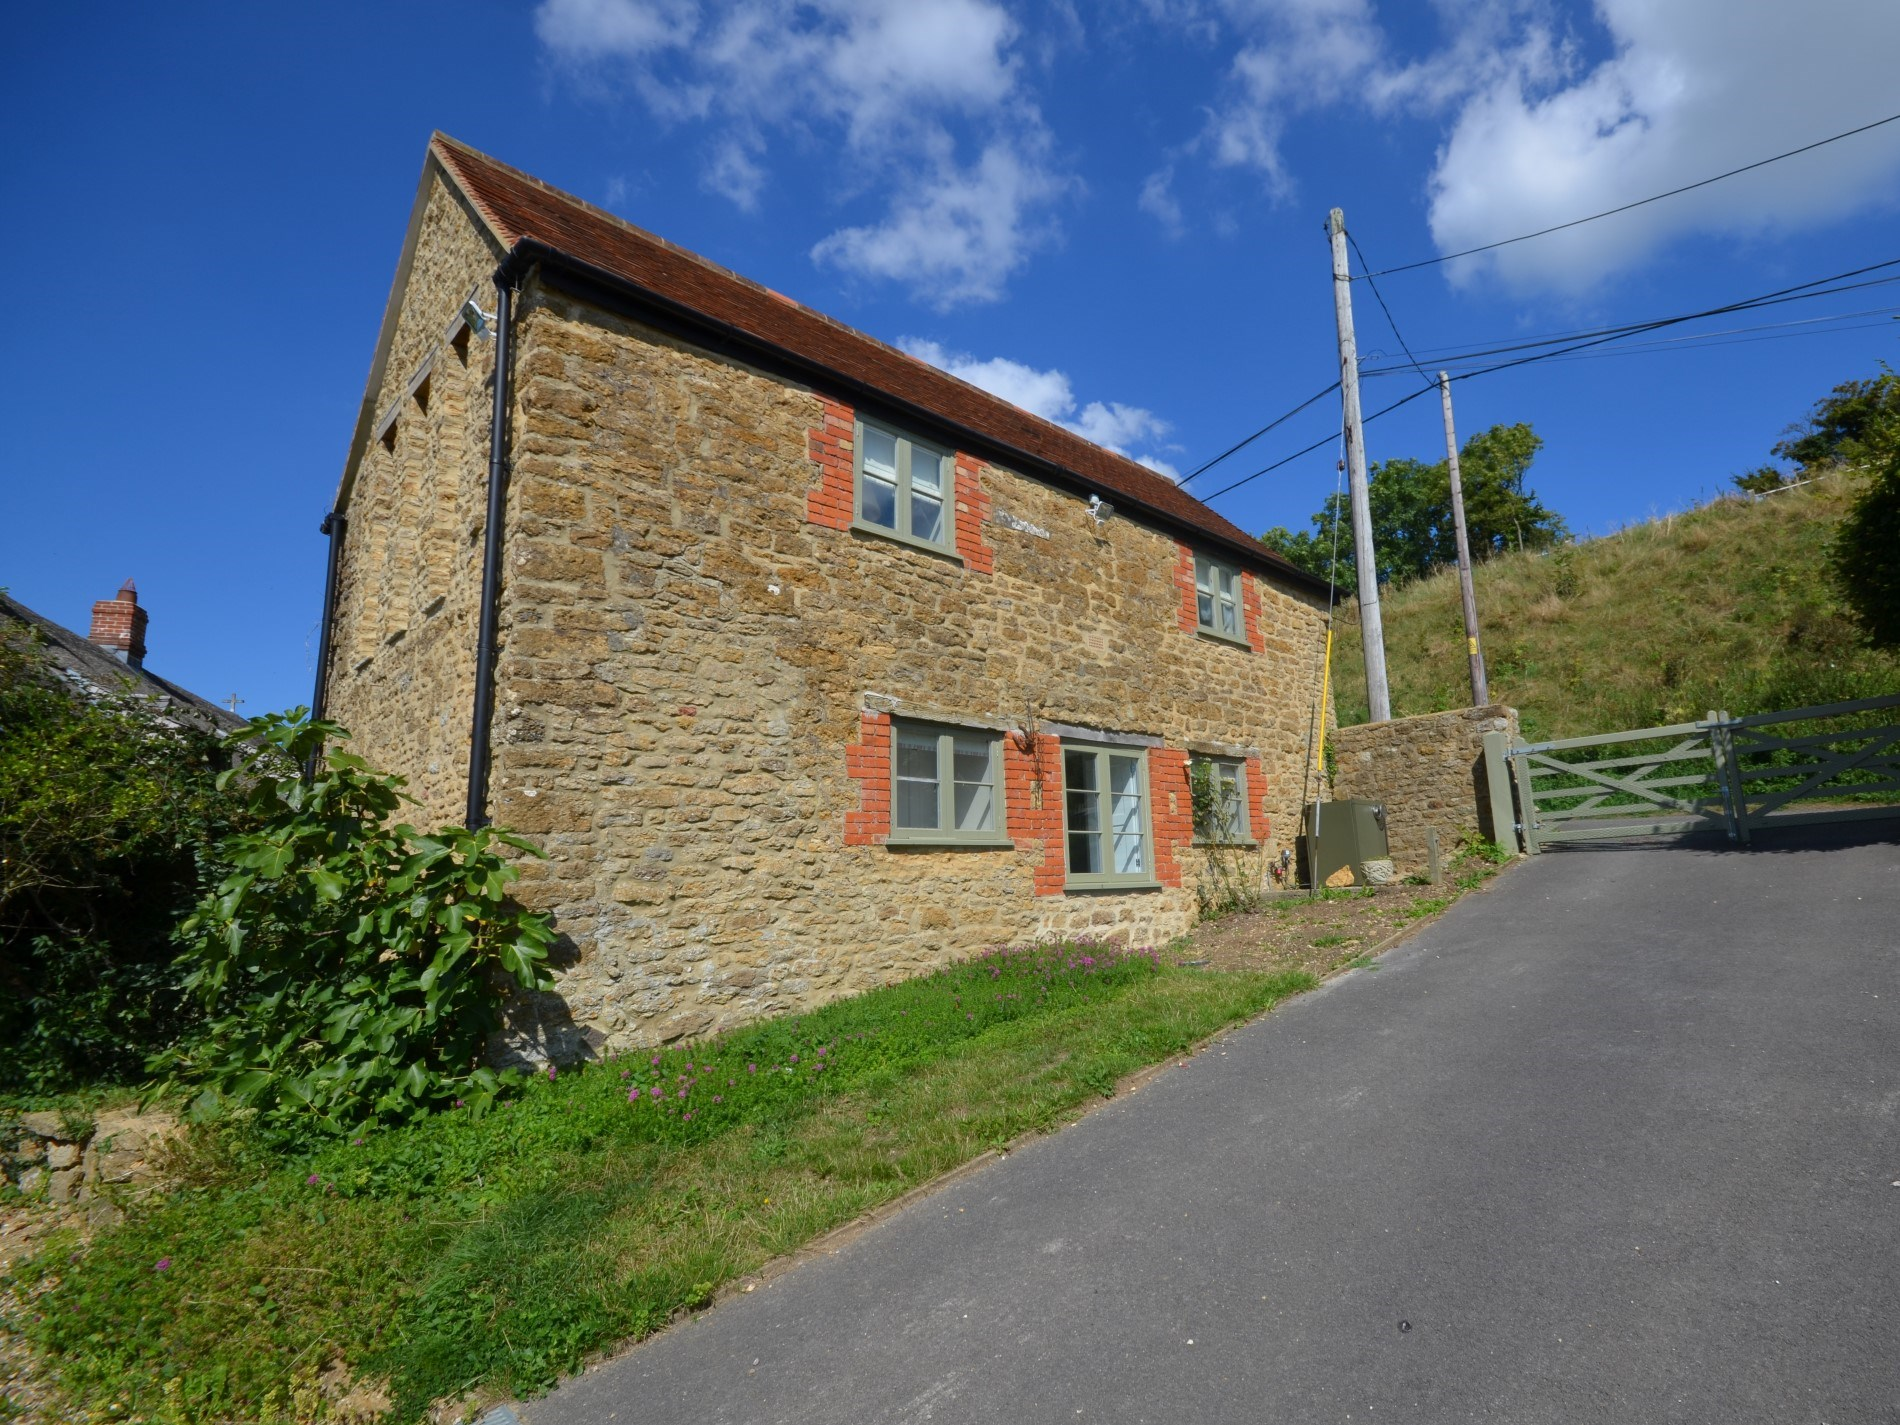 2 Bedroom Cottage in Wincanton, Dorset and Somerset